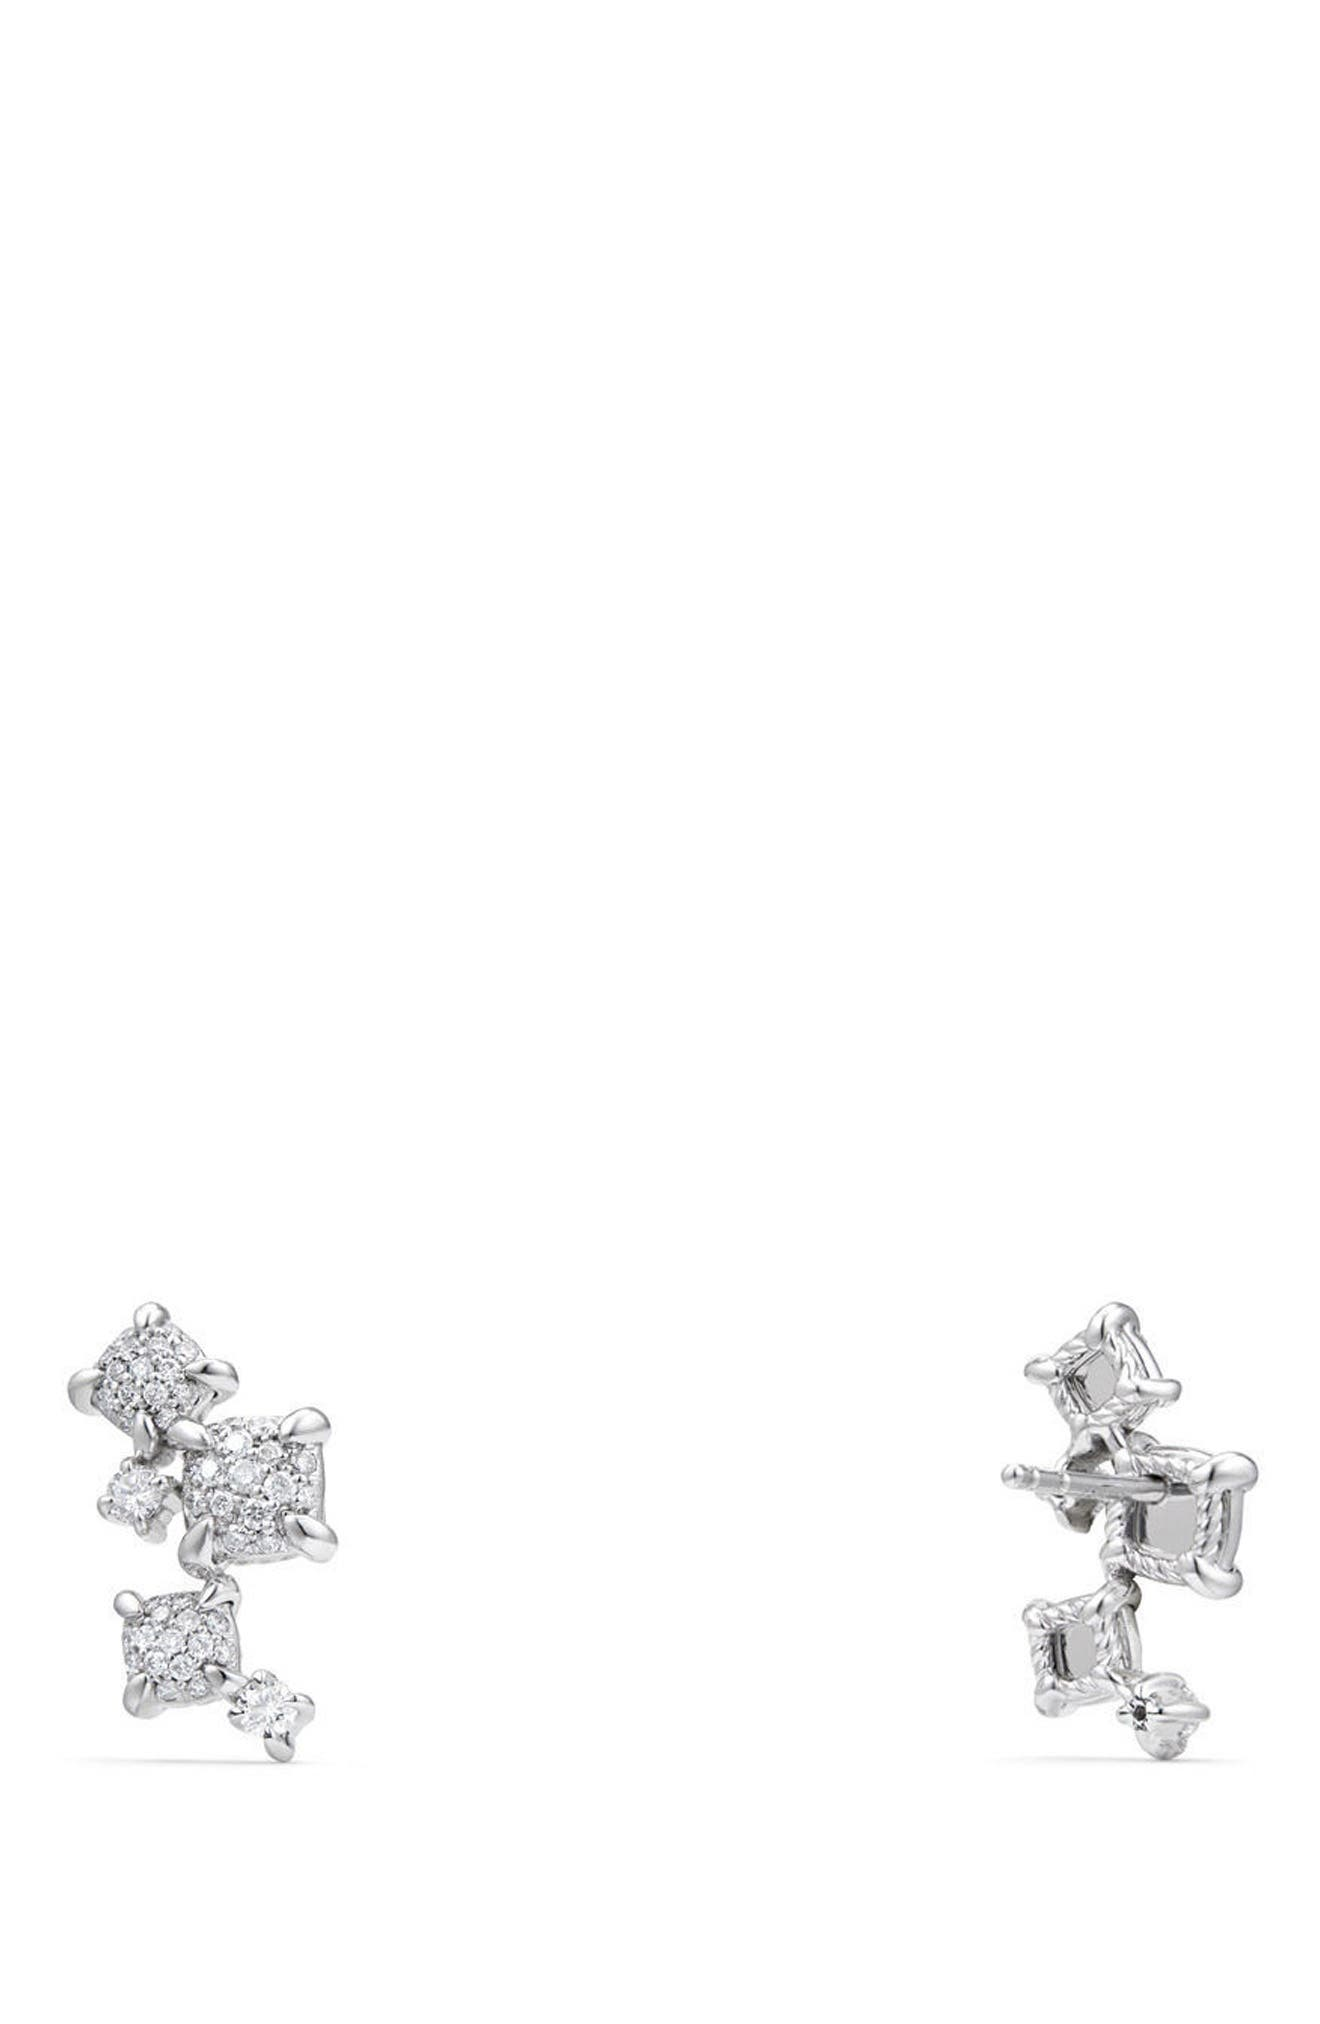 Alternate Image 2  - David Yurman Petite Châtelaine Climber Earrings in 18K Gold with Diamonds